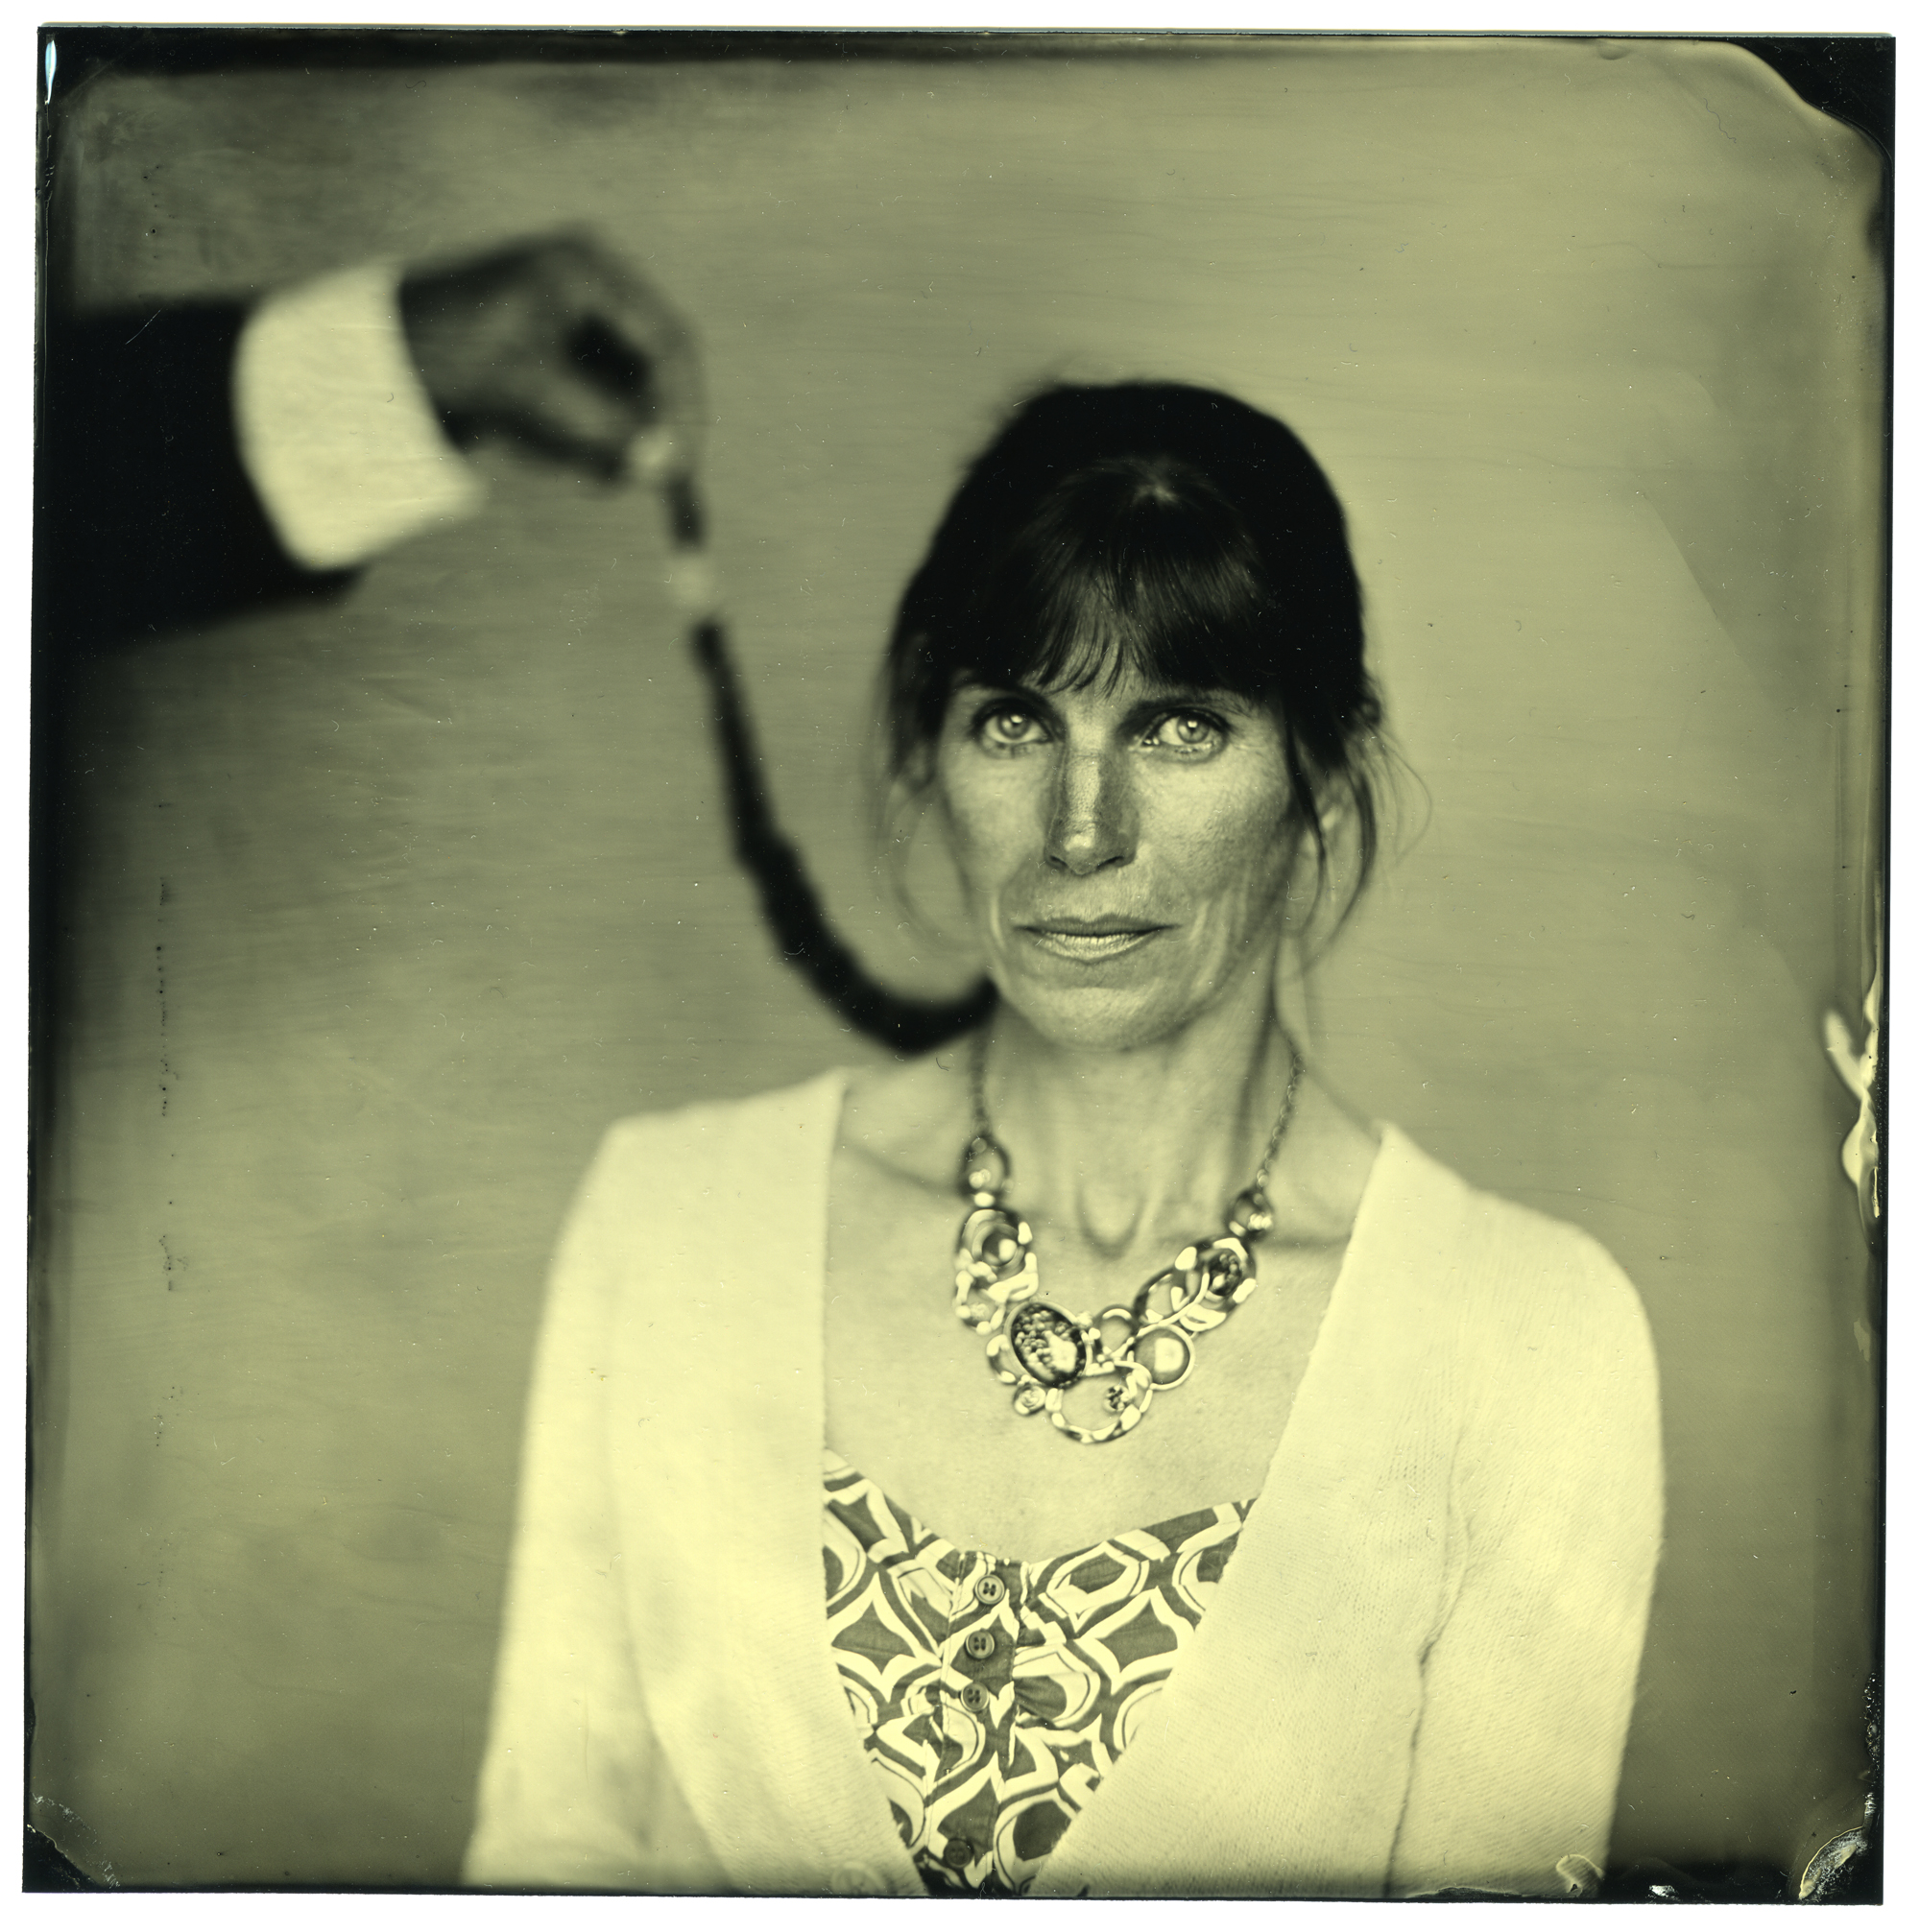 Sylvie - Collodion Photo Pierremmanuel PROUX